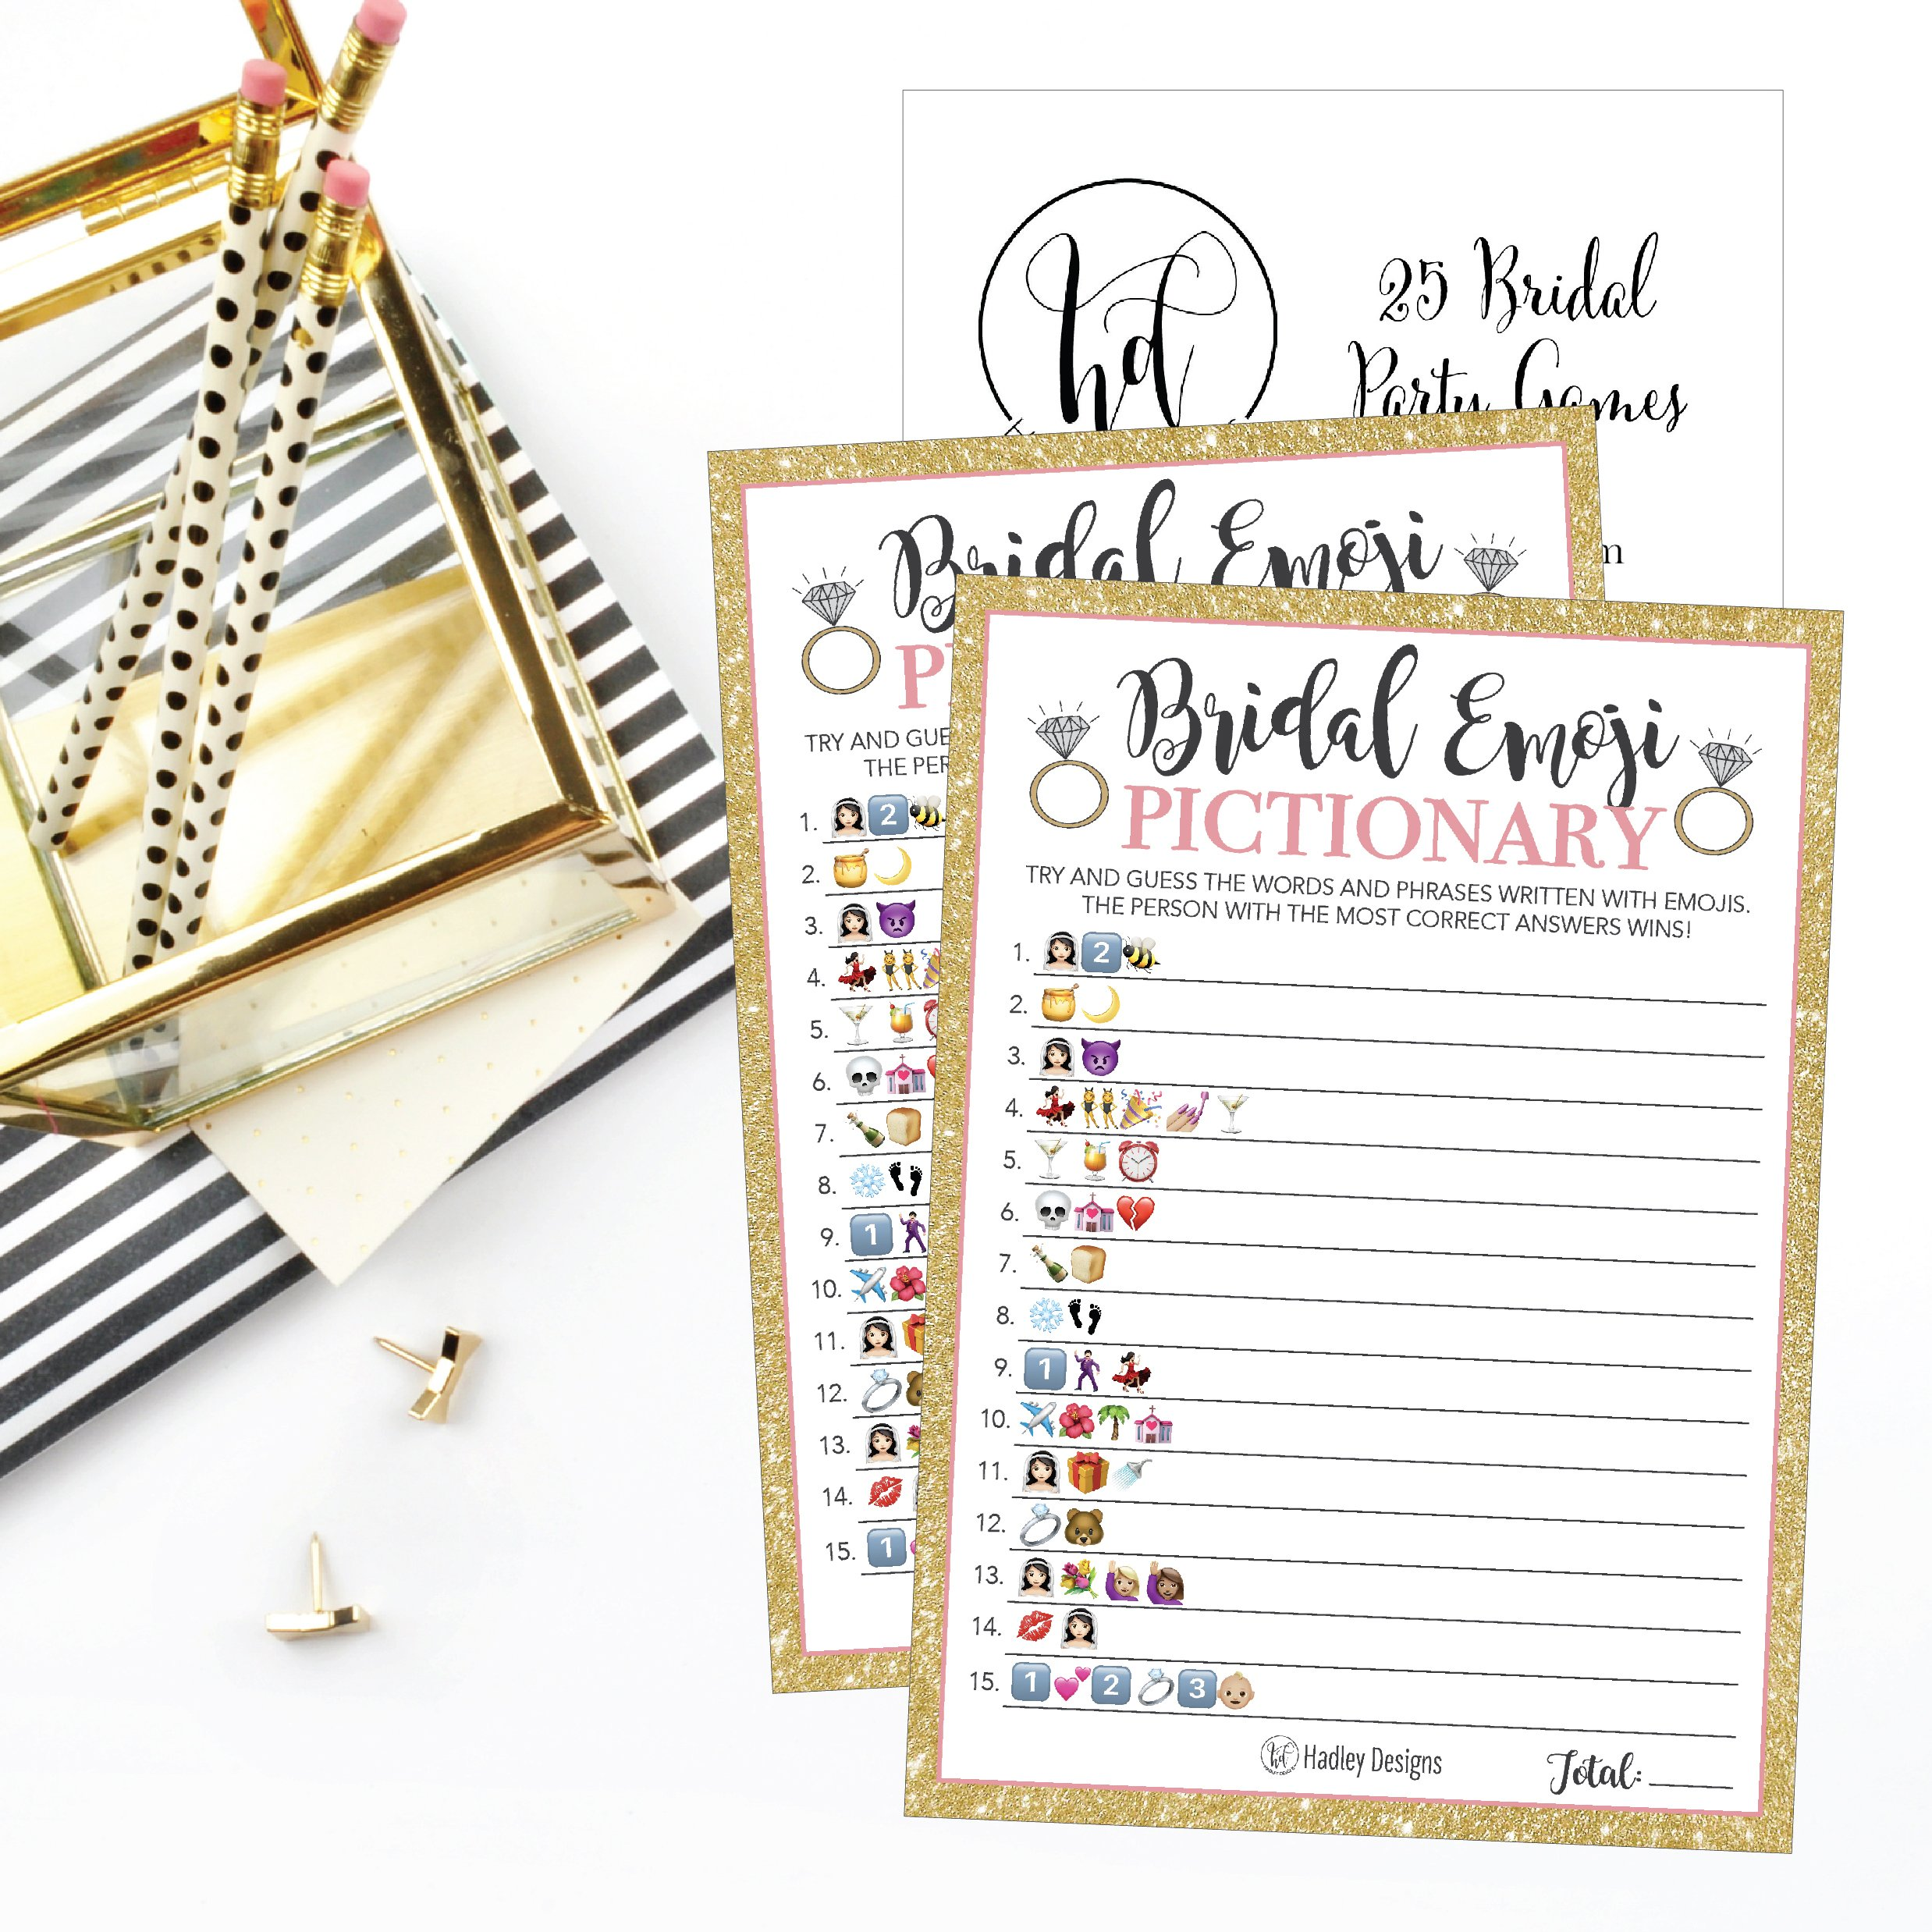 25 emoji pictionary bridal shower games ideas wedding shower bachelorette or engagement party for men and women couples cute funny board kit bundle set